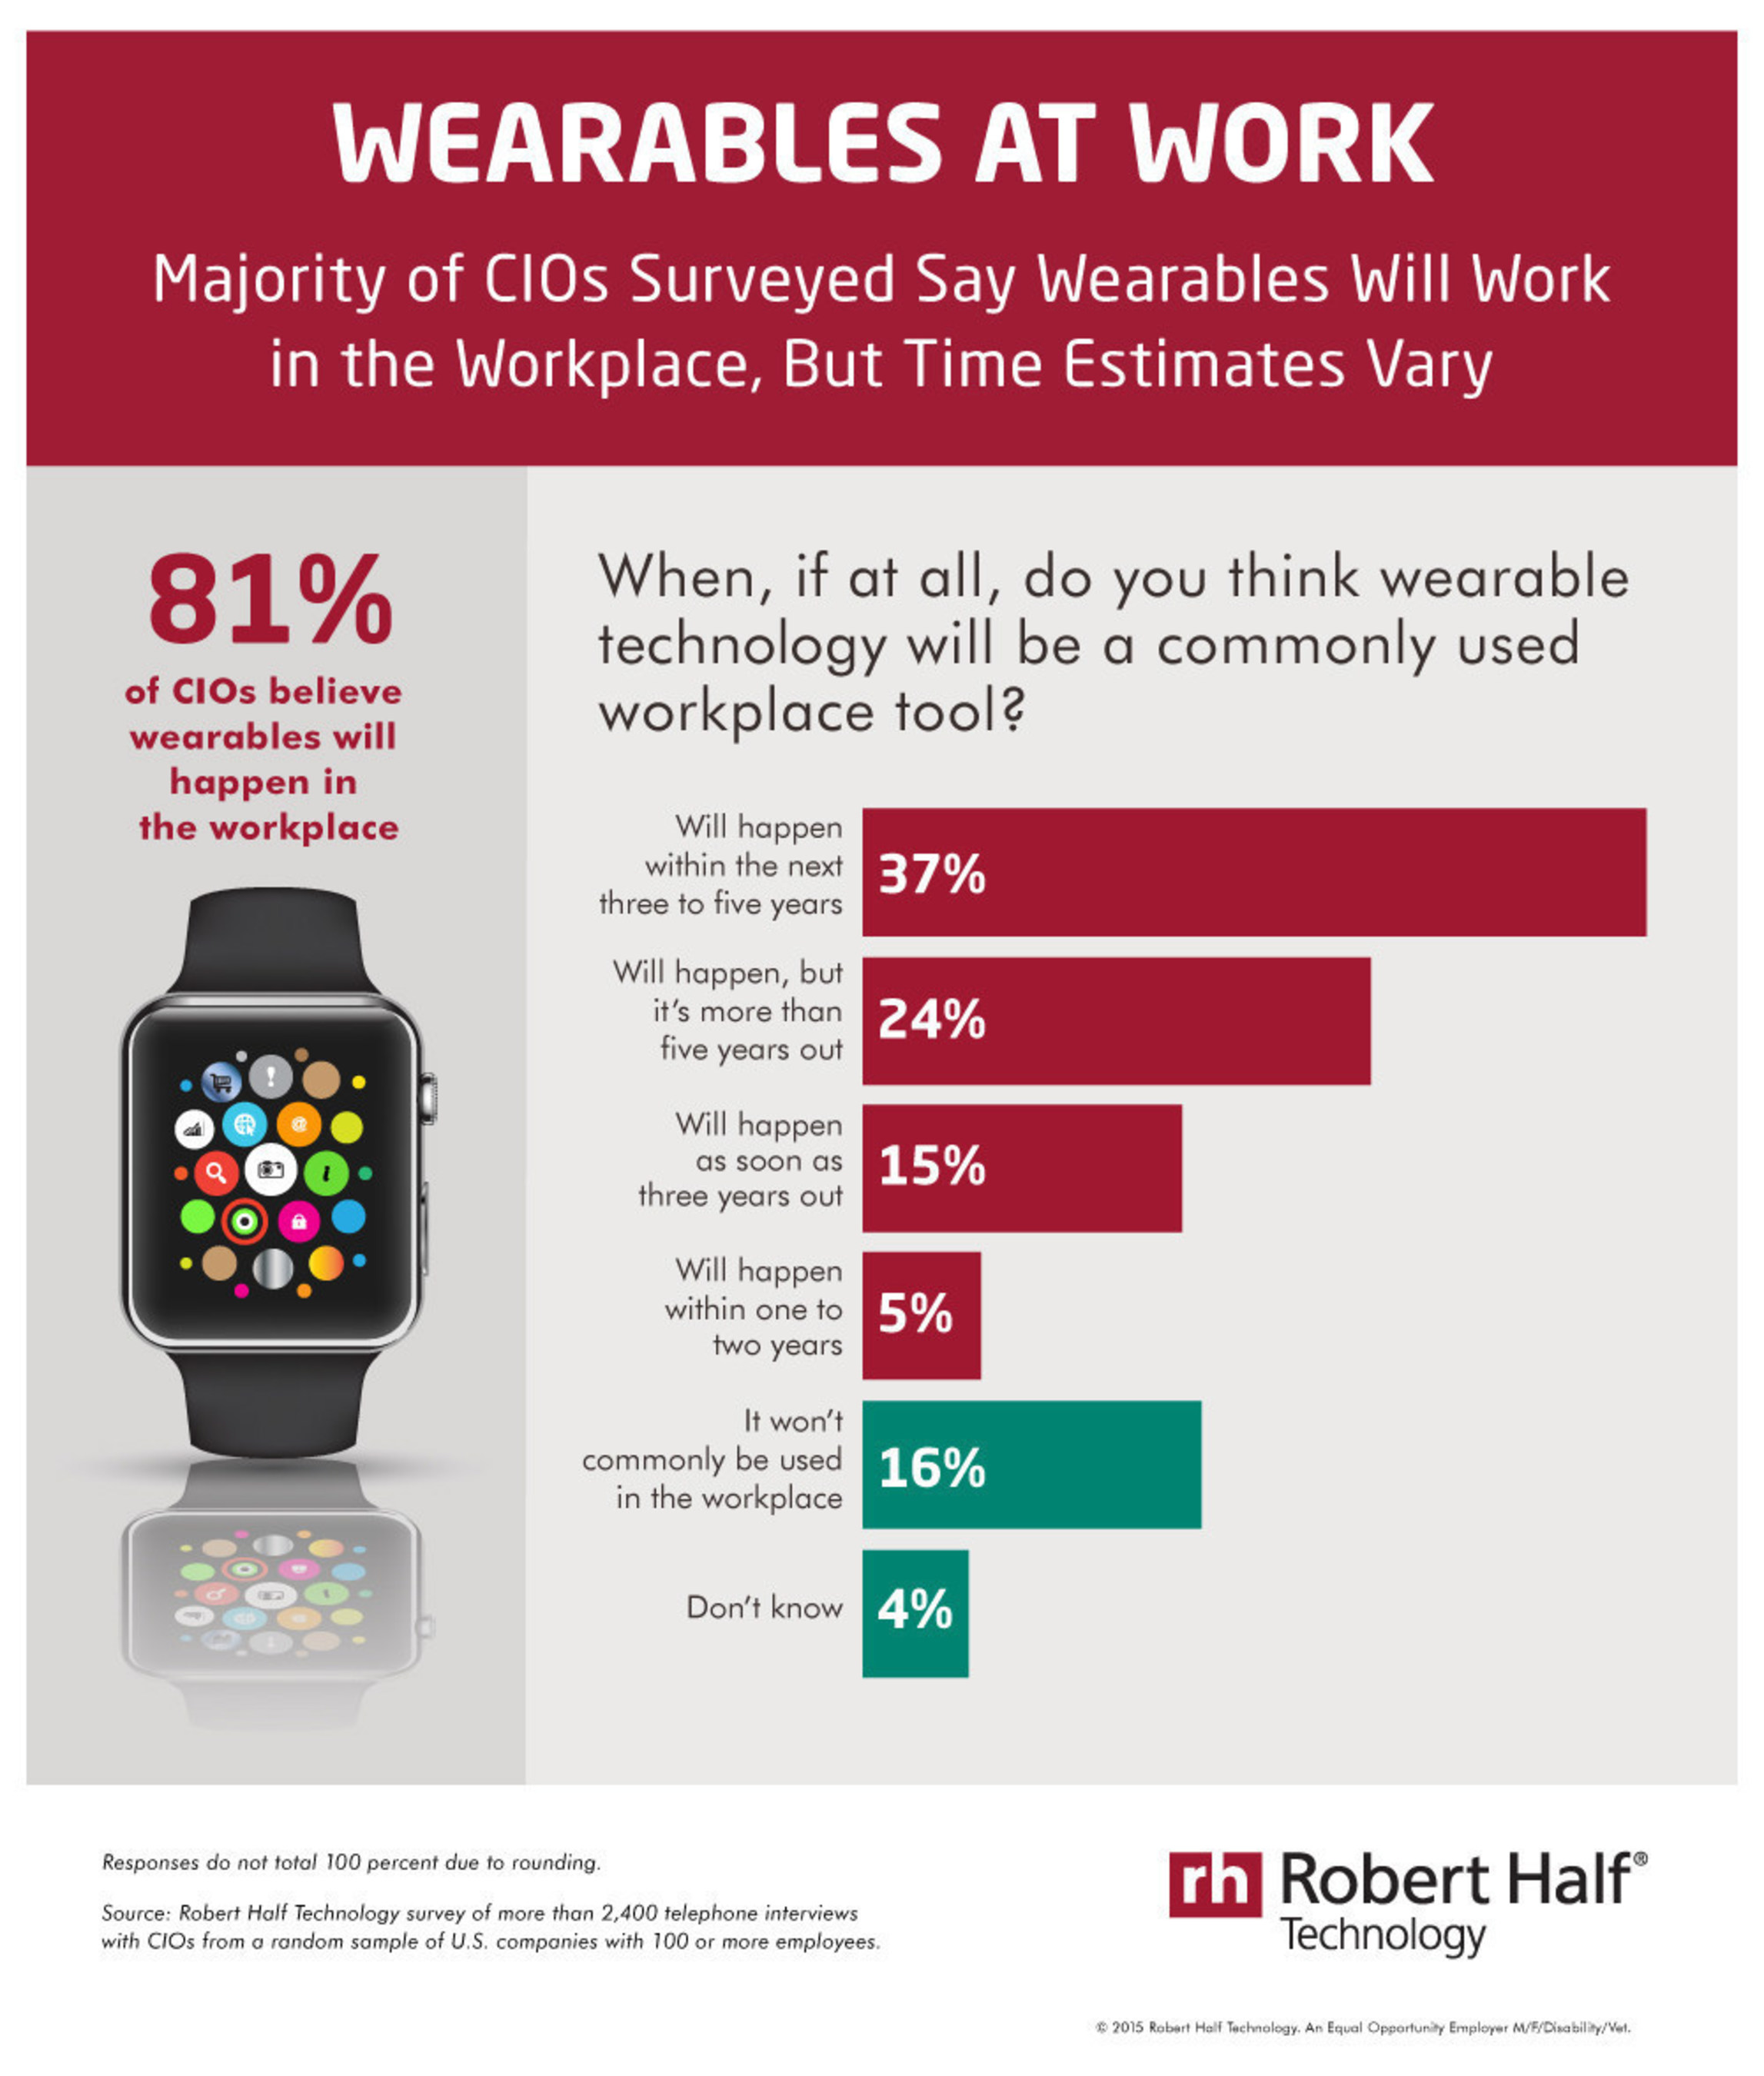 In a new survey from Robert Half Technology, 81 percent of CIOs said they believe wearable computing devices, such as watches and glasses, will become common workplace tools.